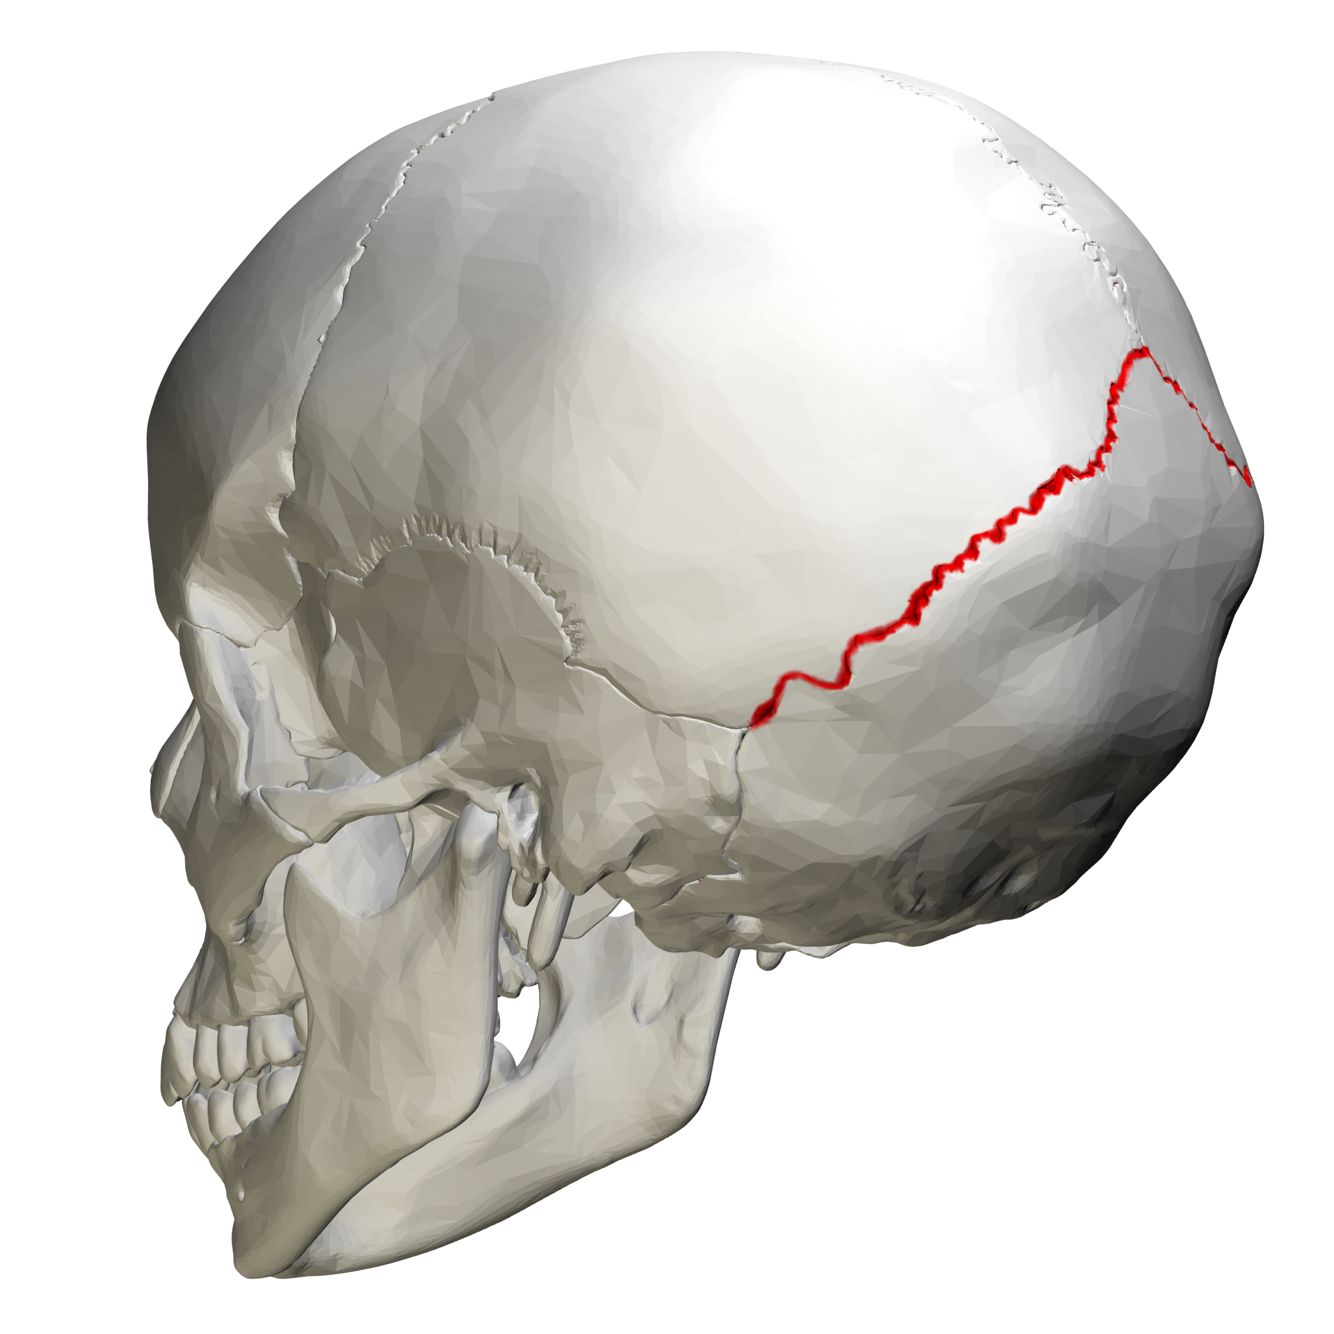 Lambdoid Suture Articulate Parietal Bones With Occipital